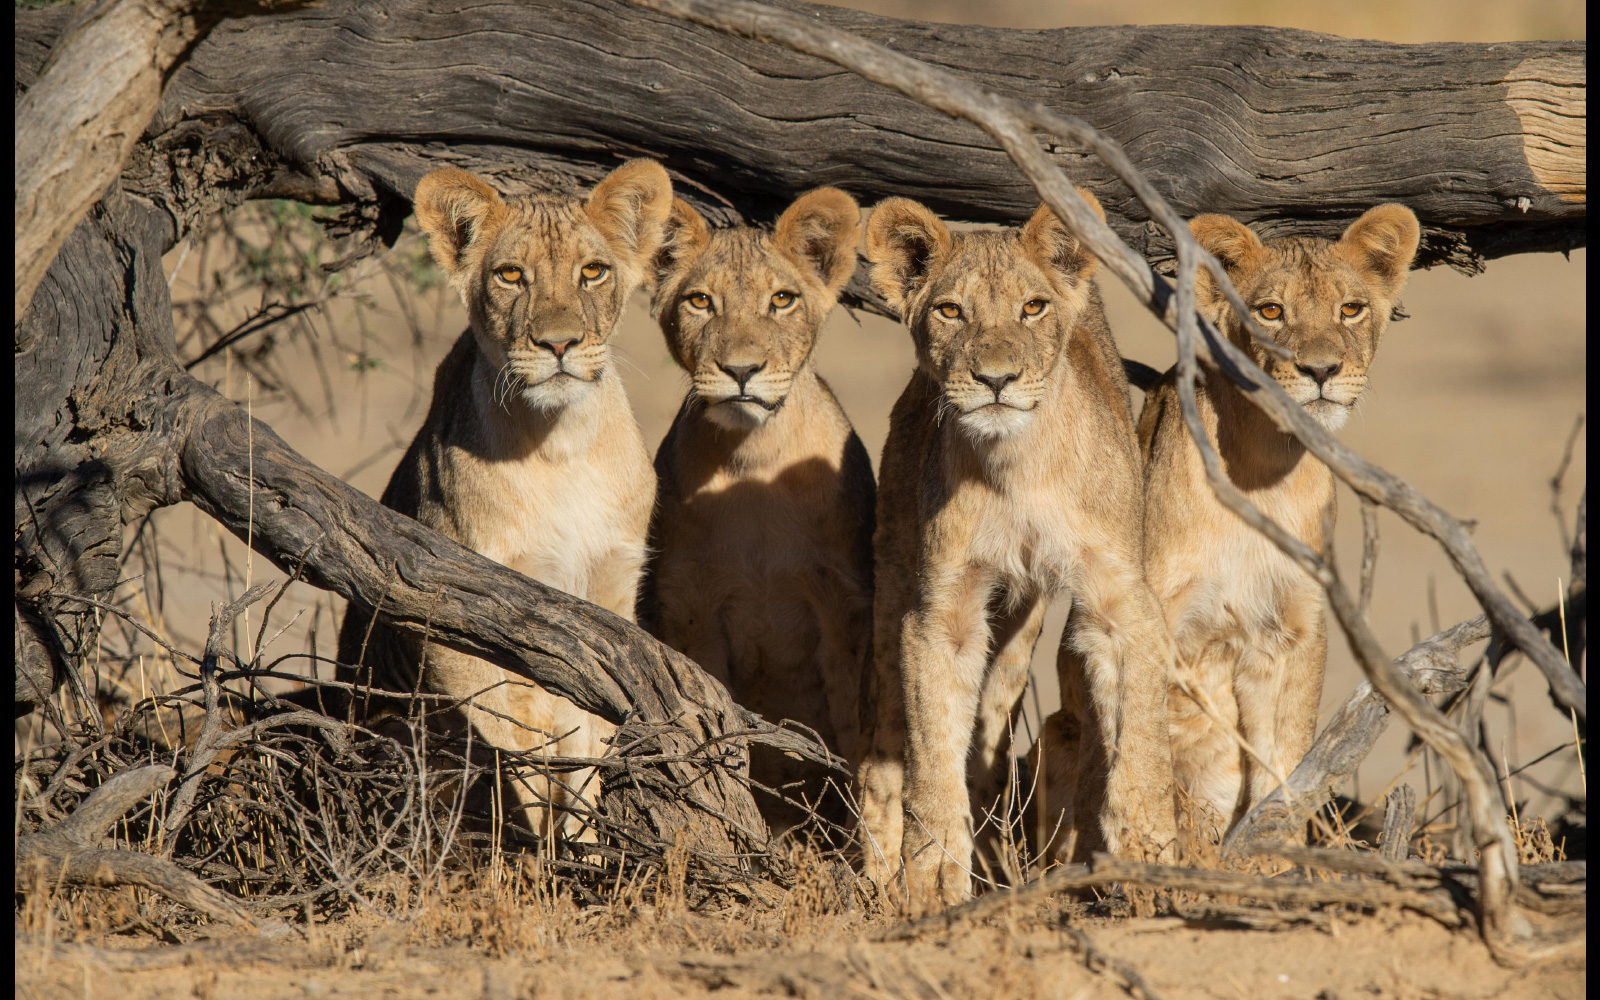 Lion cubs spotted in Kgalagadi Transfrontier Park, South Africa © Corlette Wessels (Instagram/corlette_wessels_photography)